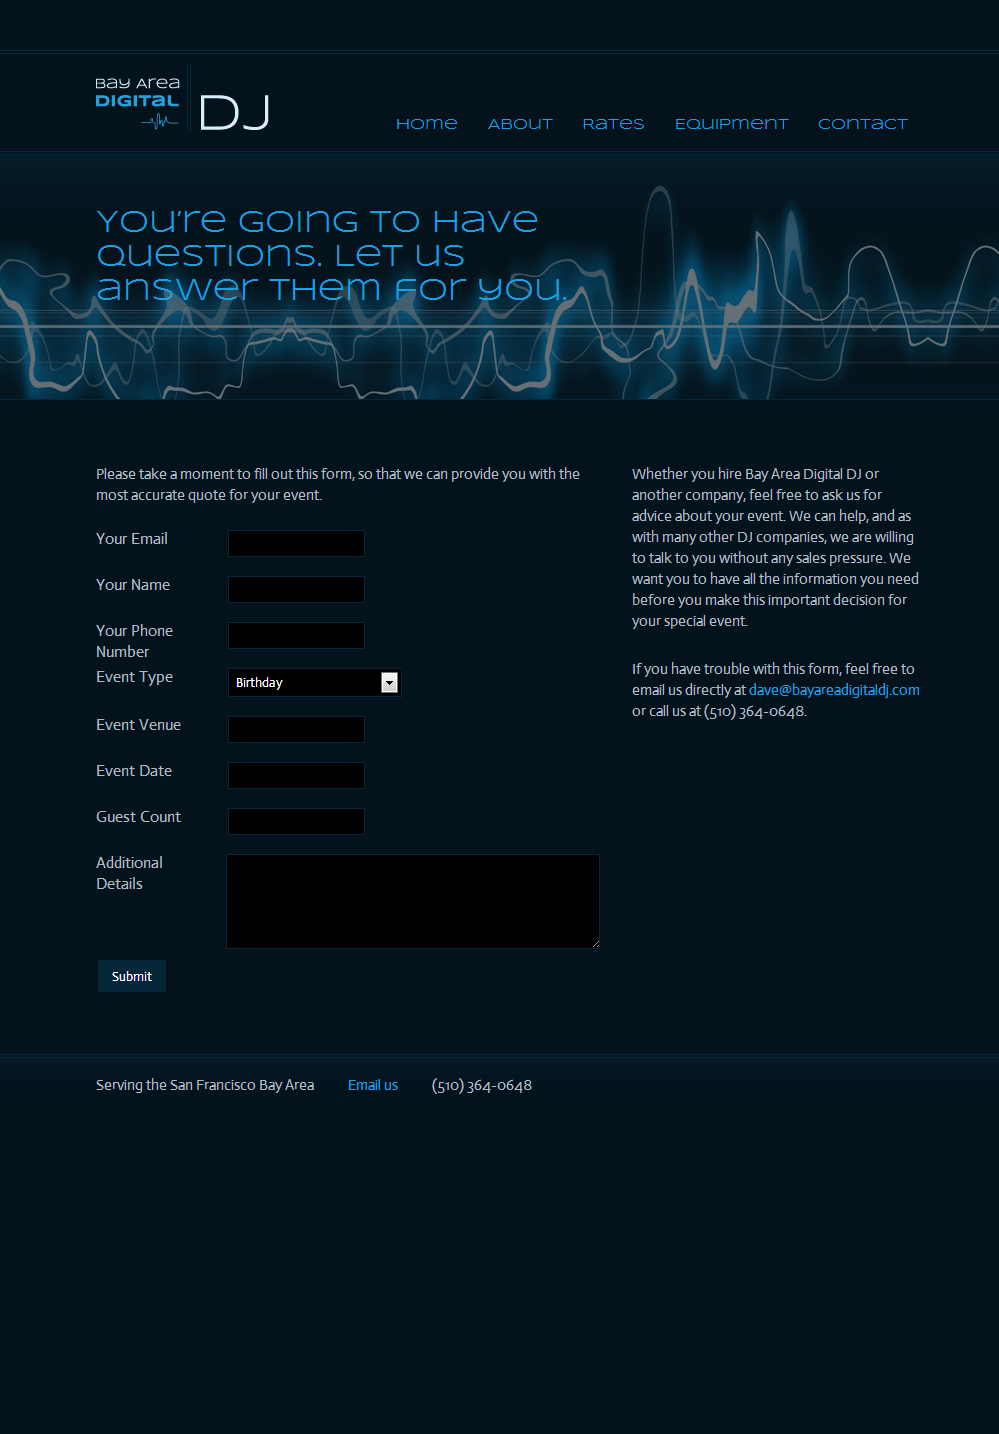 Bay area digital dj site mockup